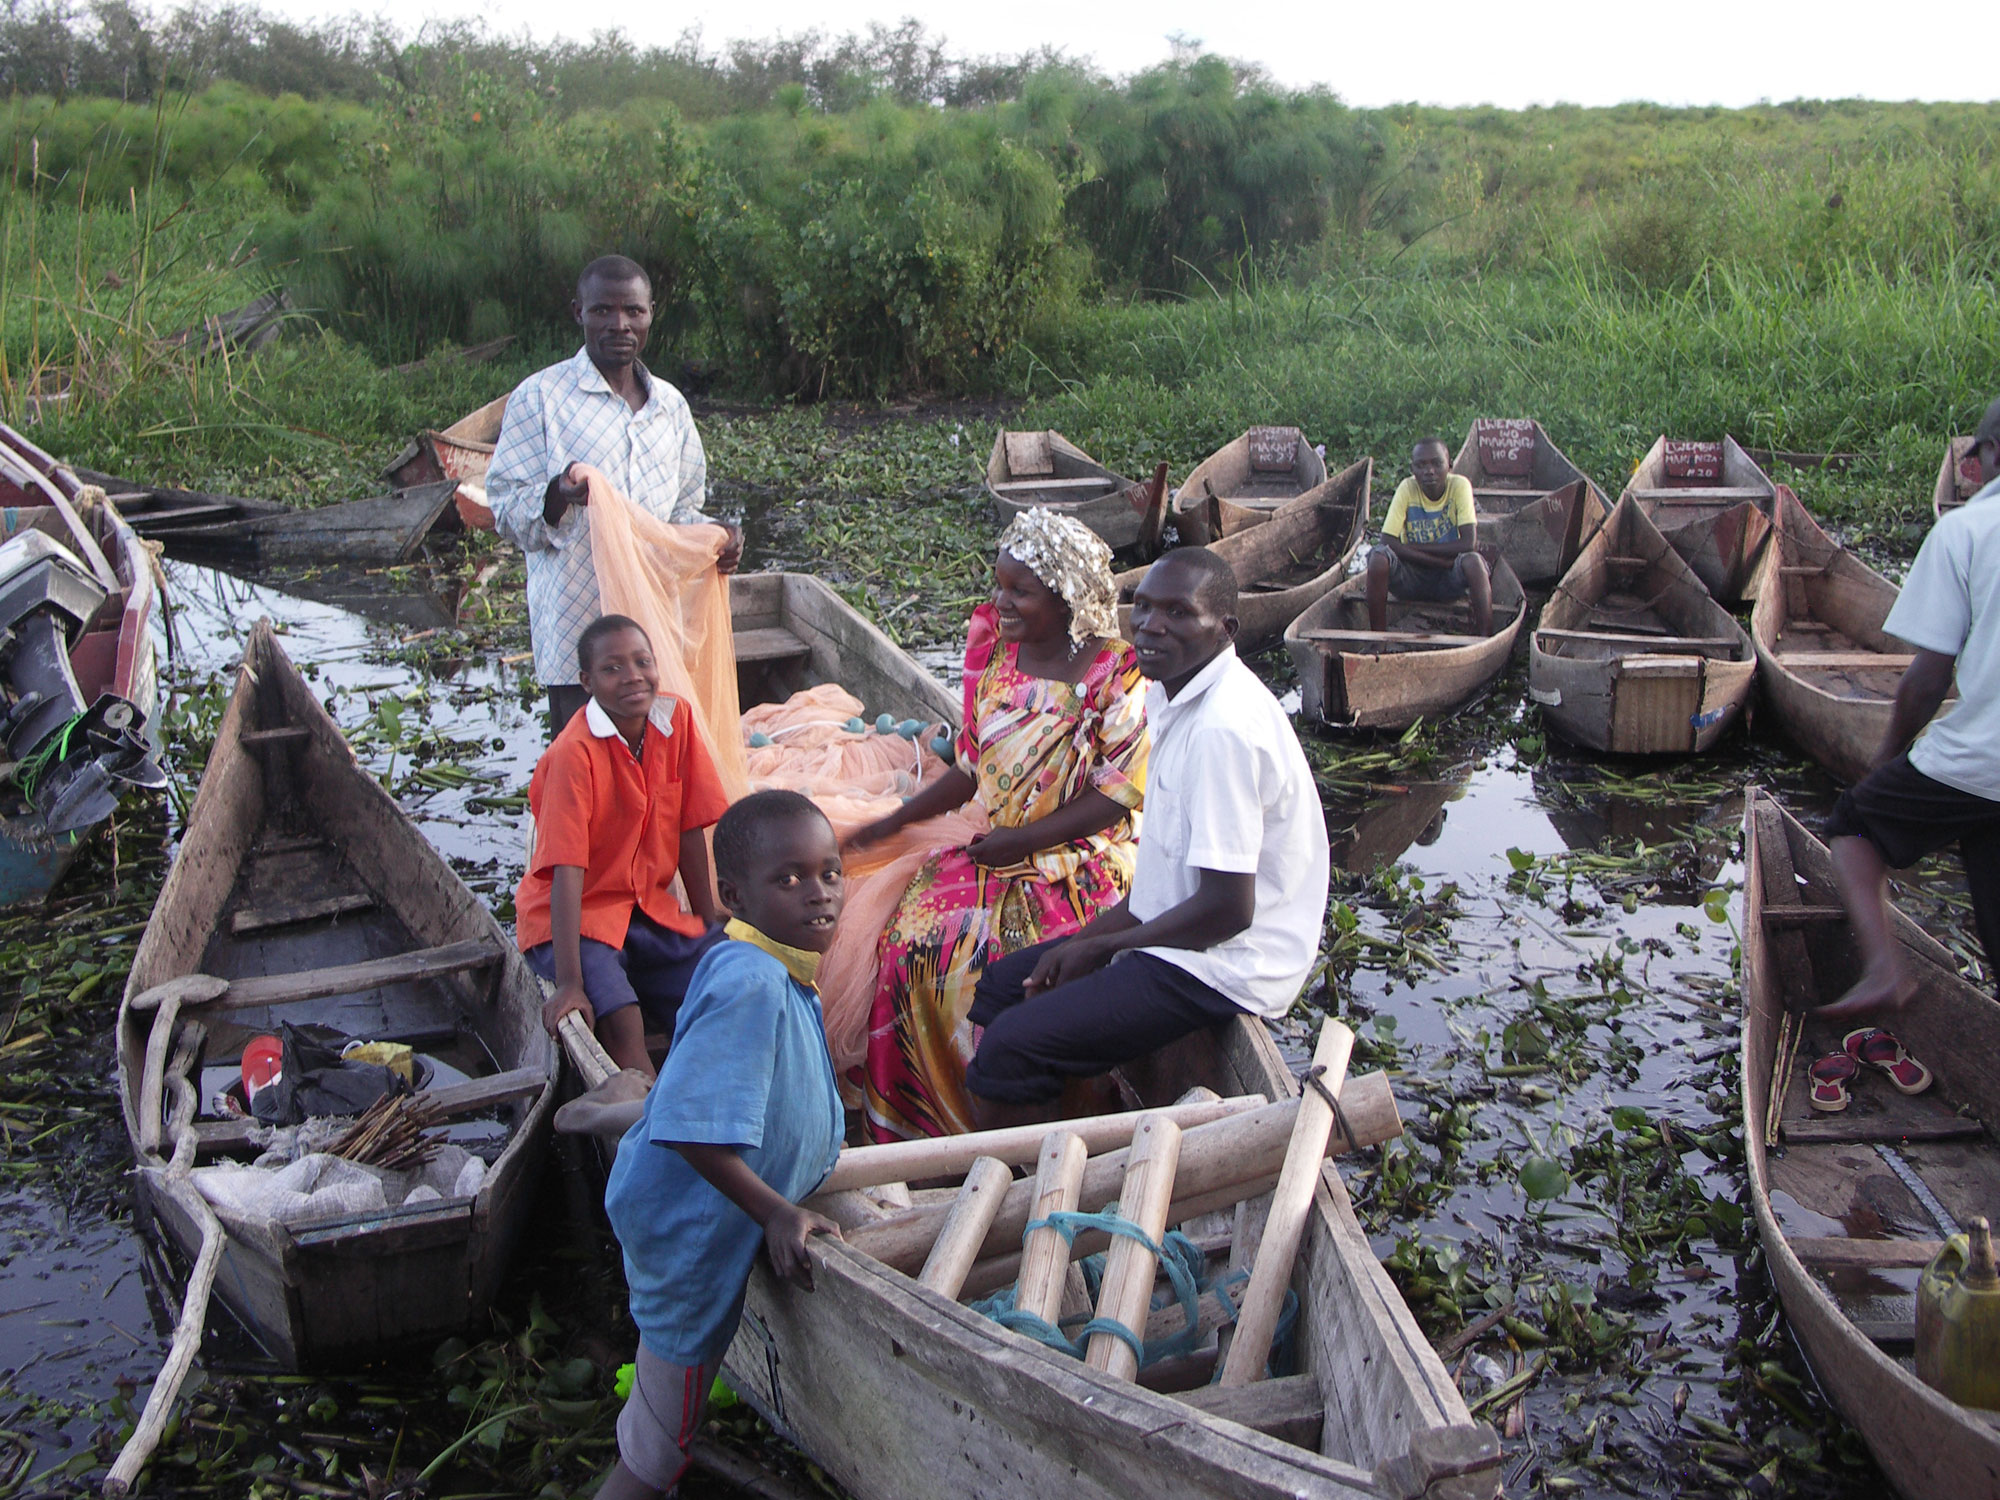 A fishing boat provided for the family by ALLHIM